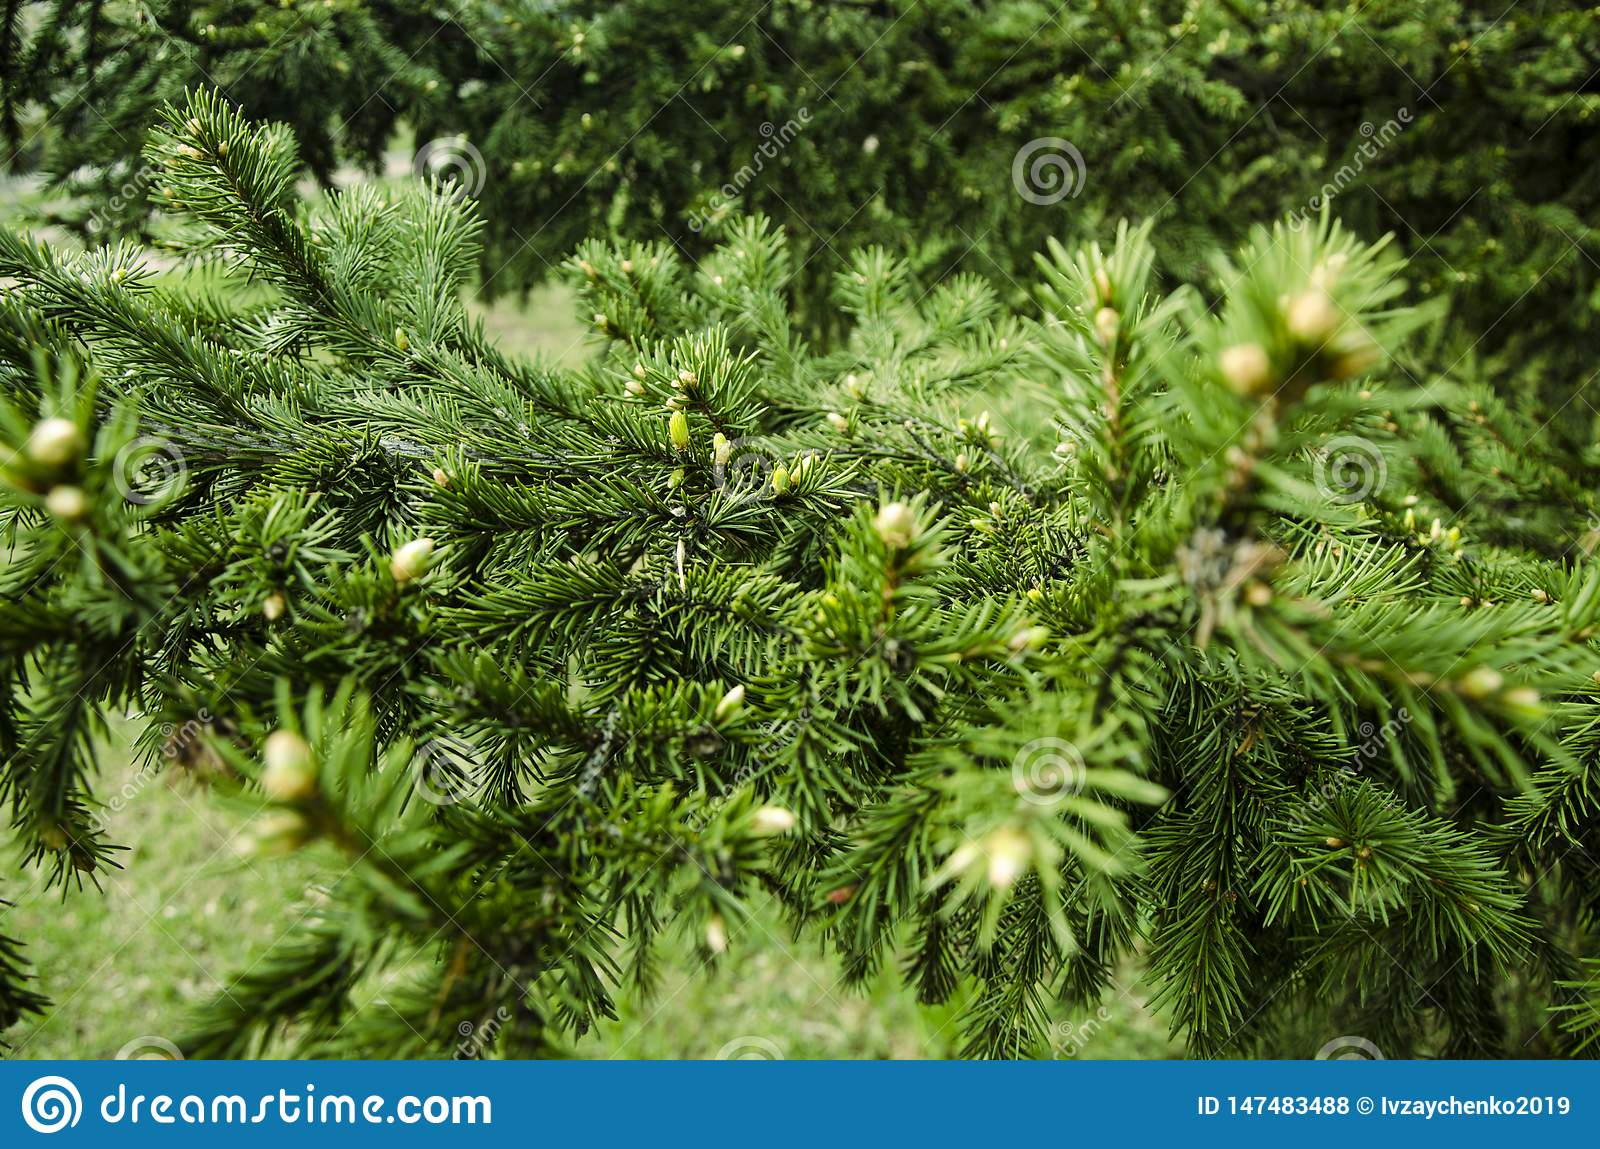 Young branches ate spruce buds and young spruce needles against